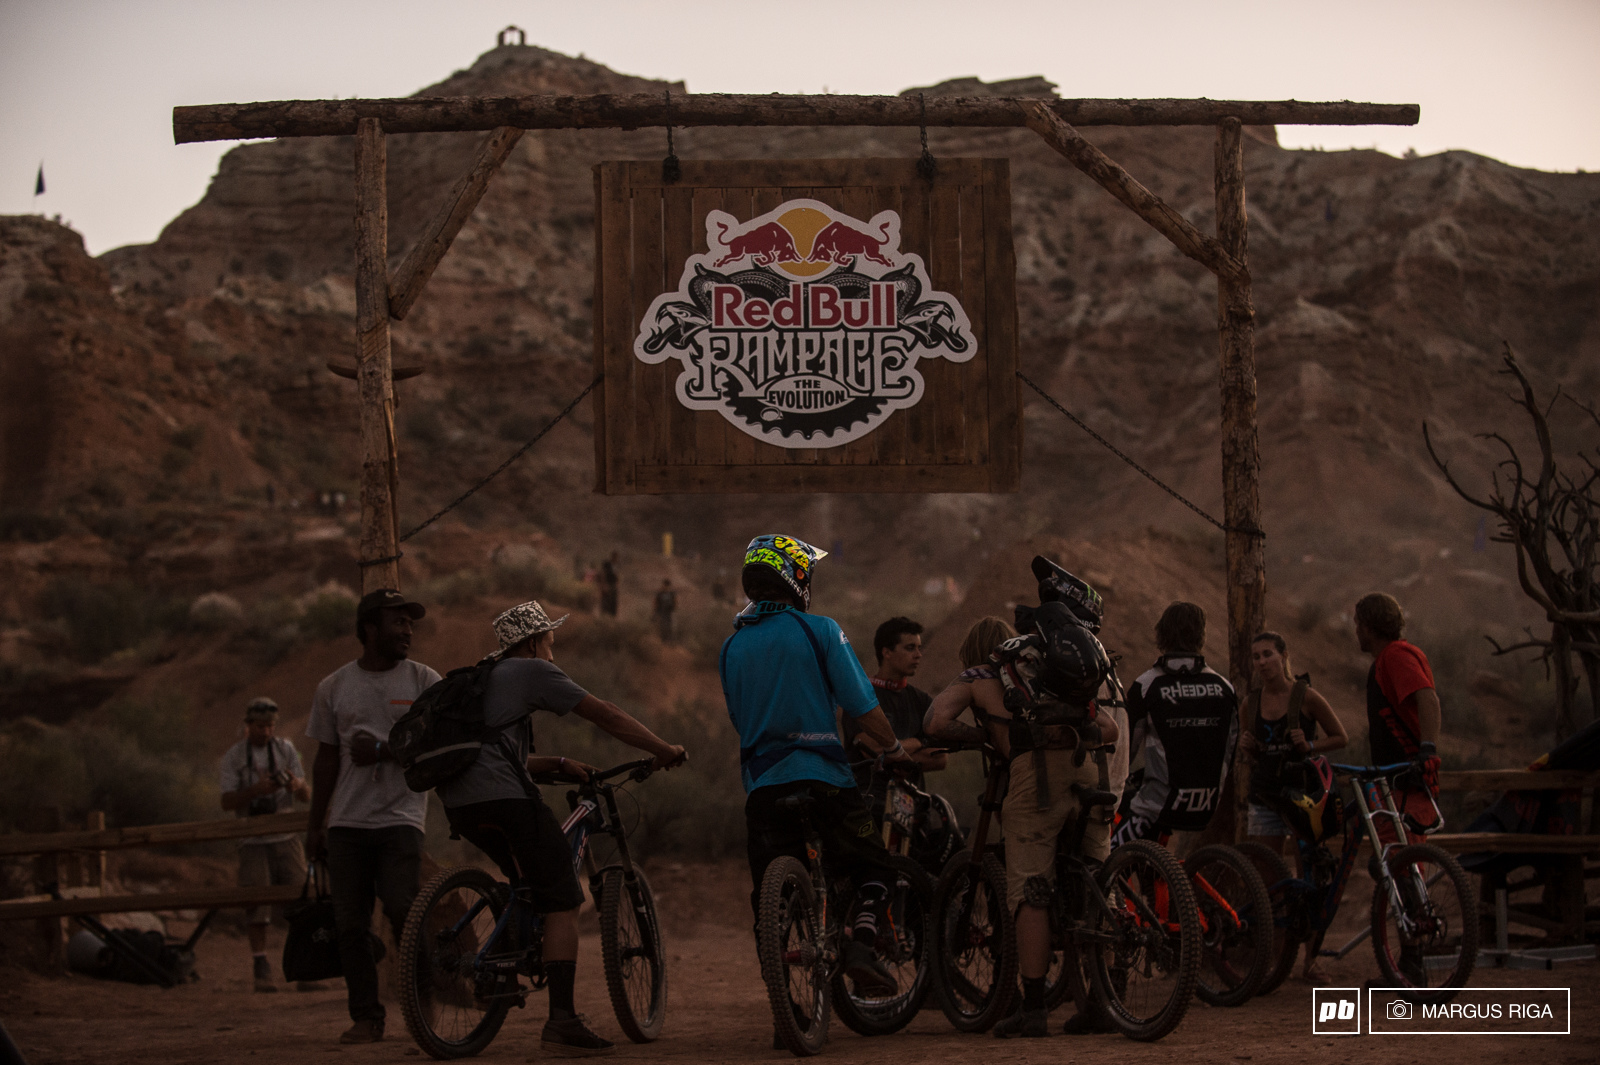 Riders at Rampage 2014